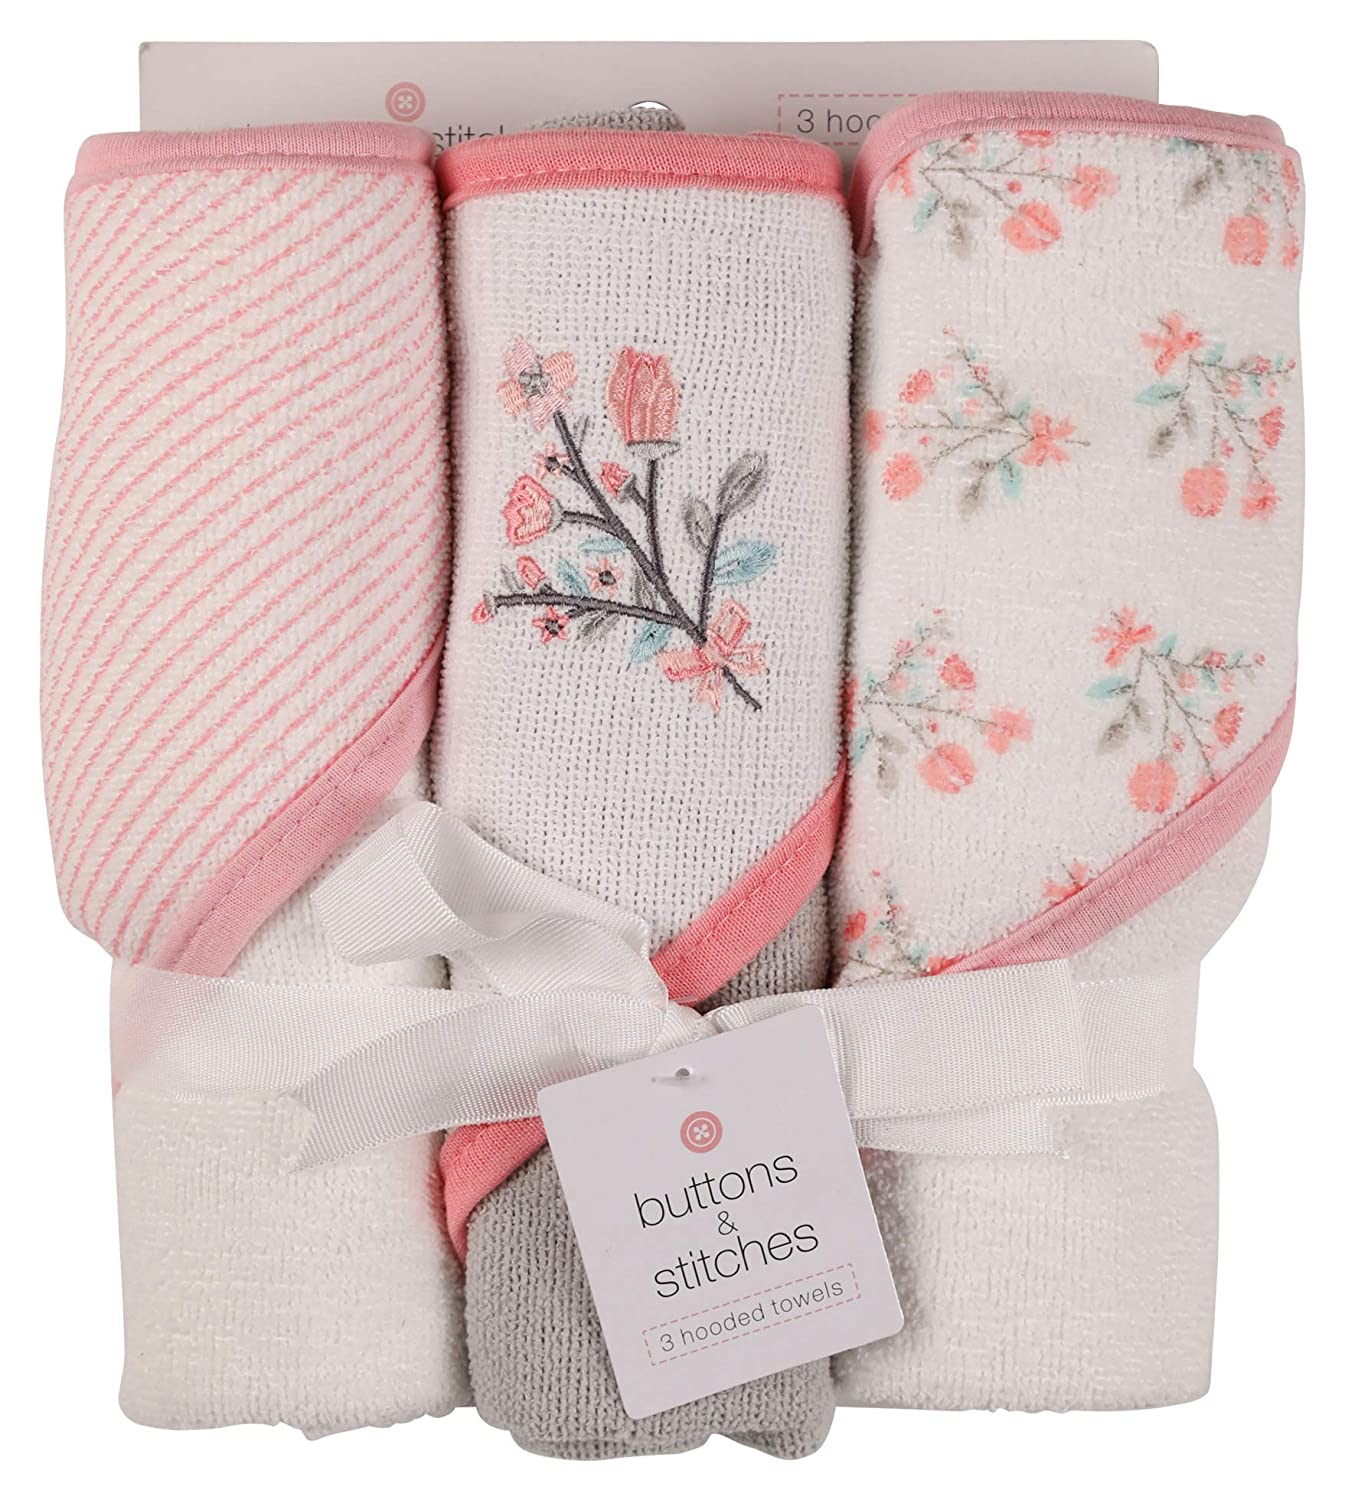 Under blast sales Buttons and Stitches Baby Infant Pack Towel Directly managed store Hooded 3